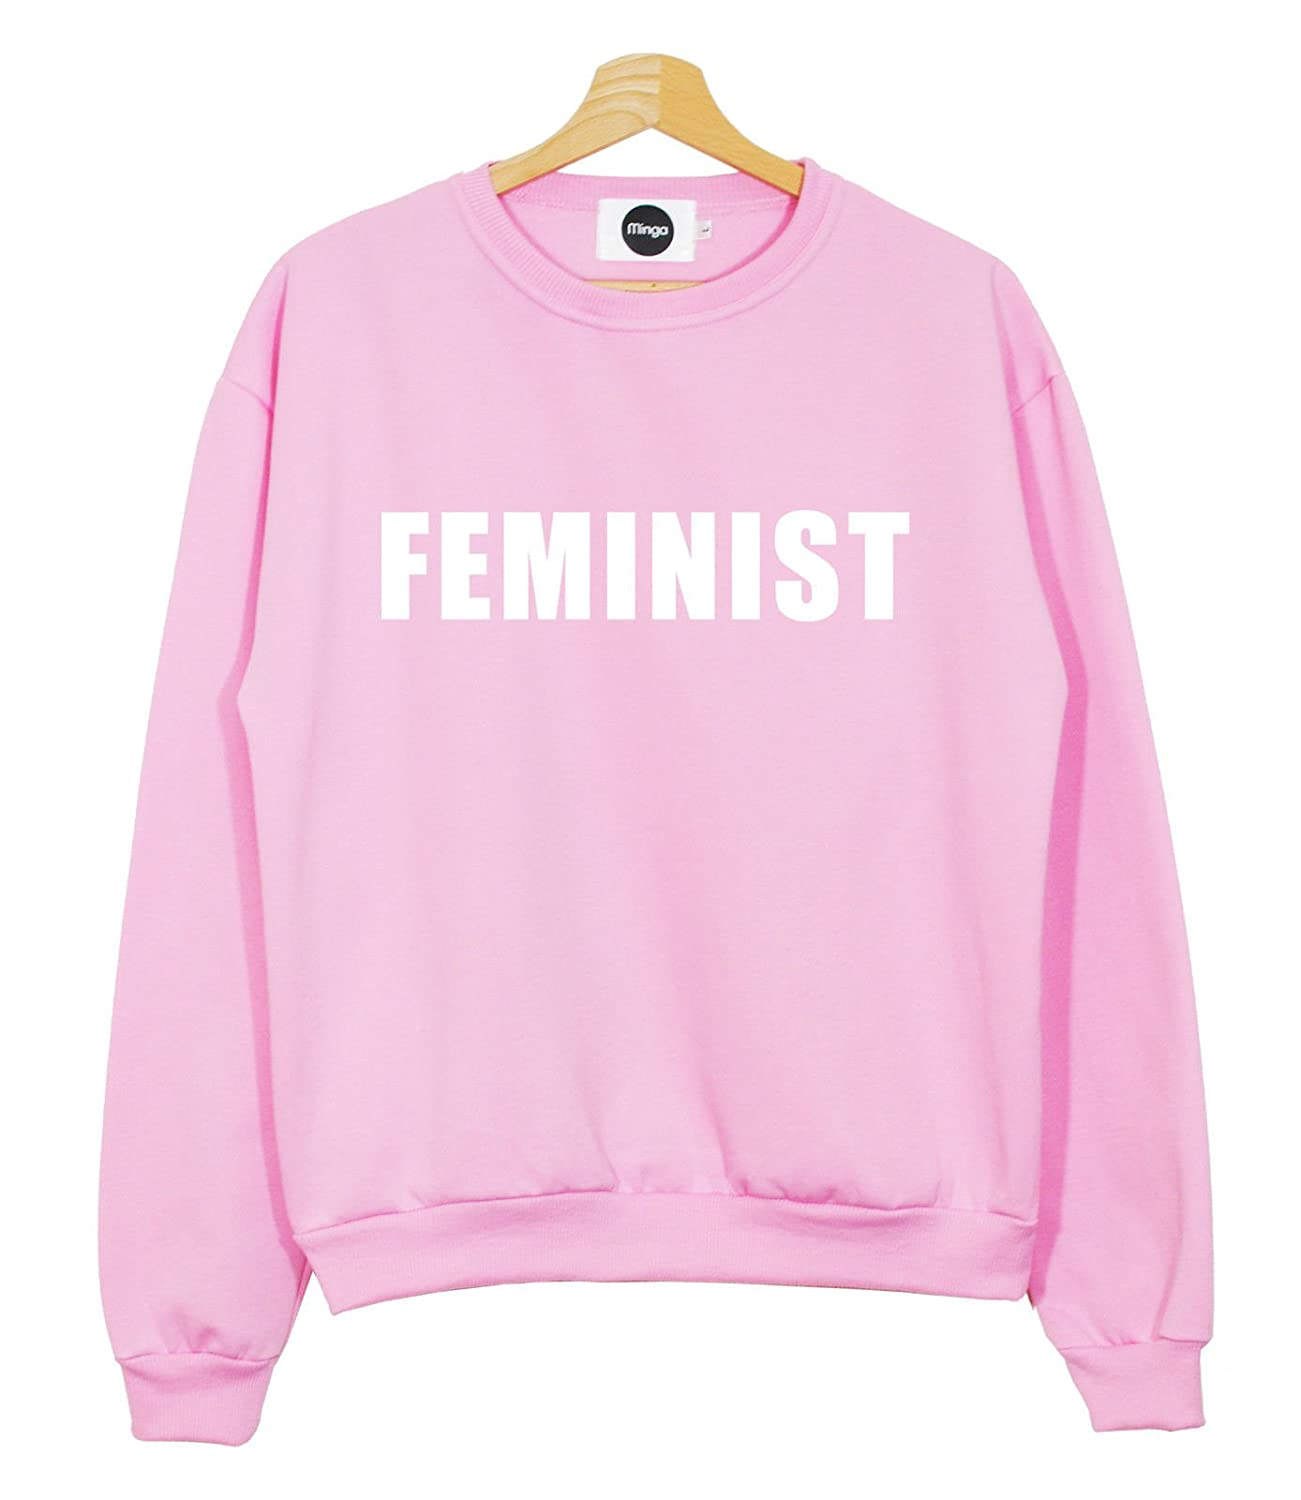 Feminist Sweater Top Women's Fun Fashion at Amazon Women's ...